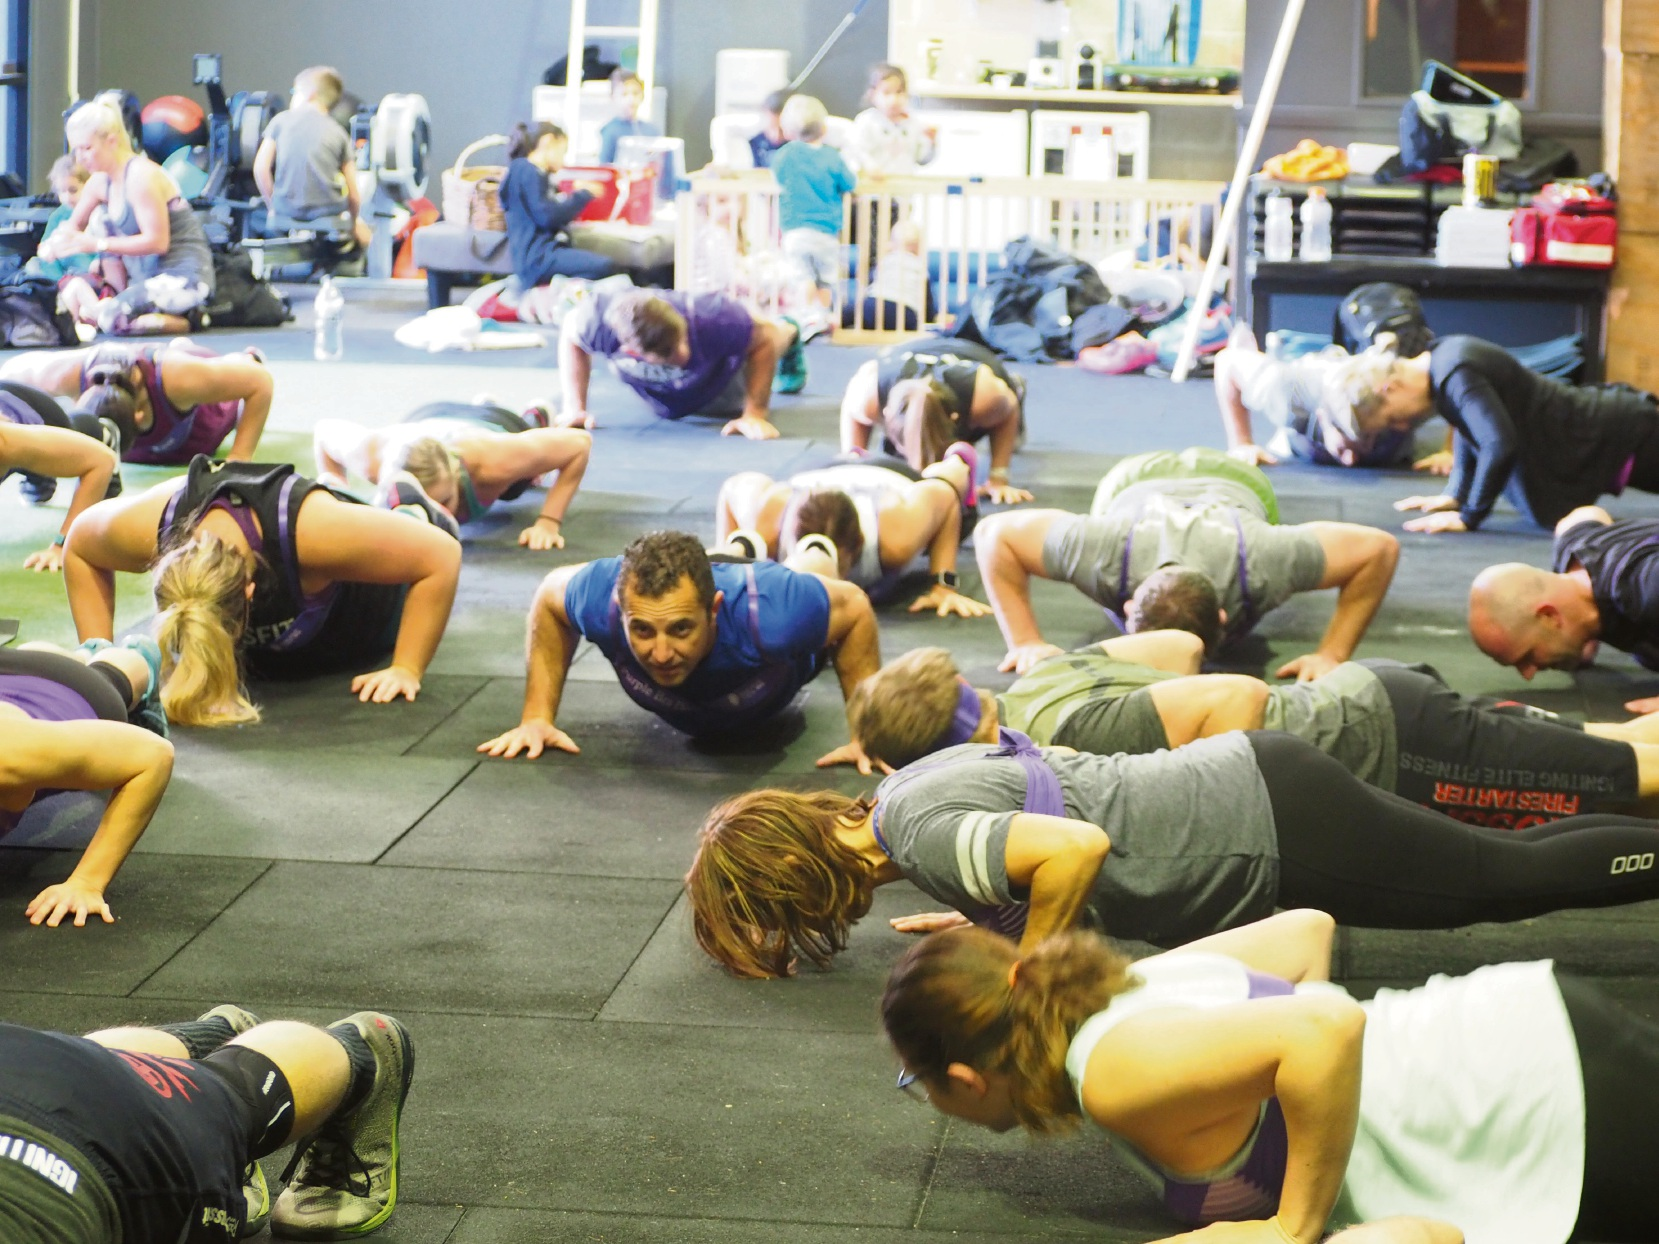 Participants all took part in a military-style work-out.